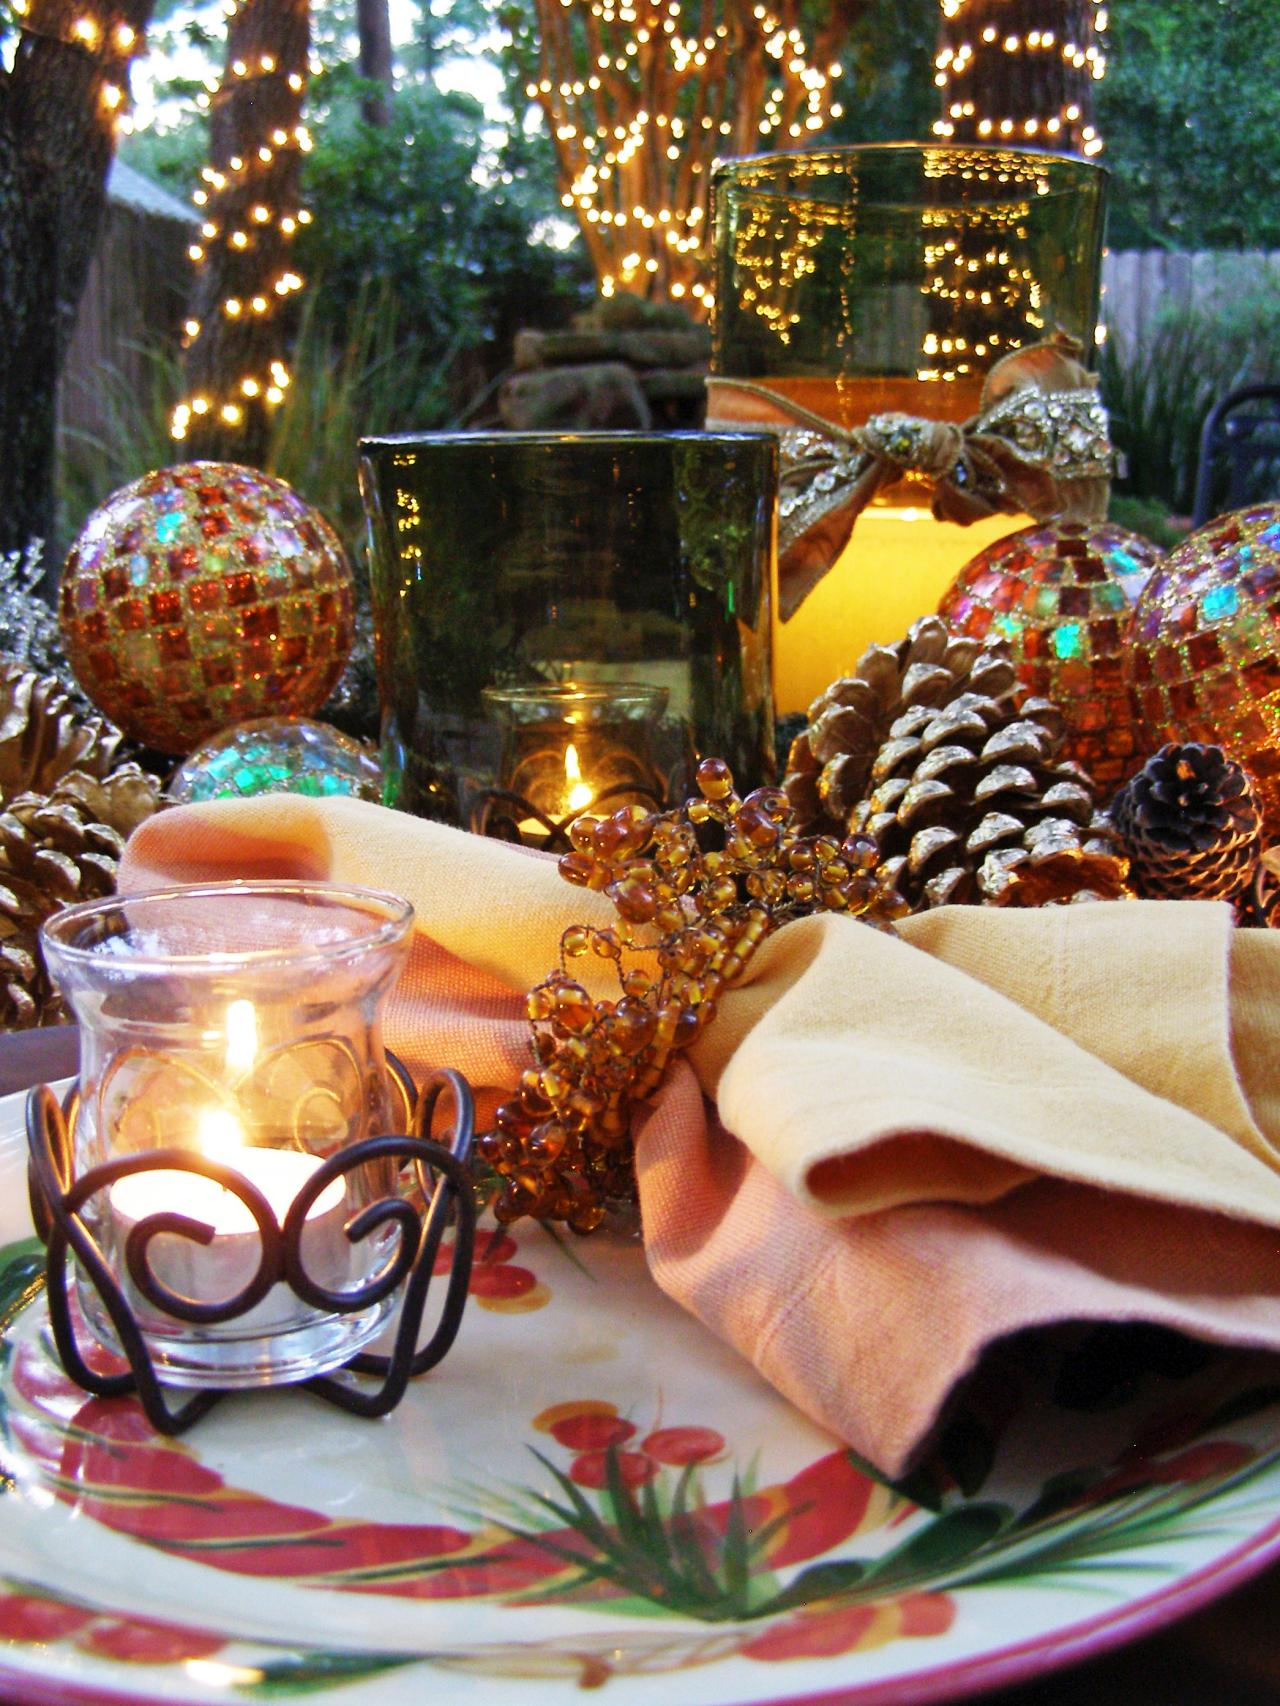 Hgtv Christmas Home Decorating Ideas